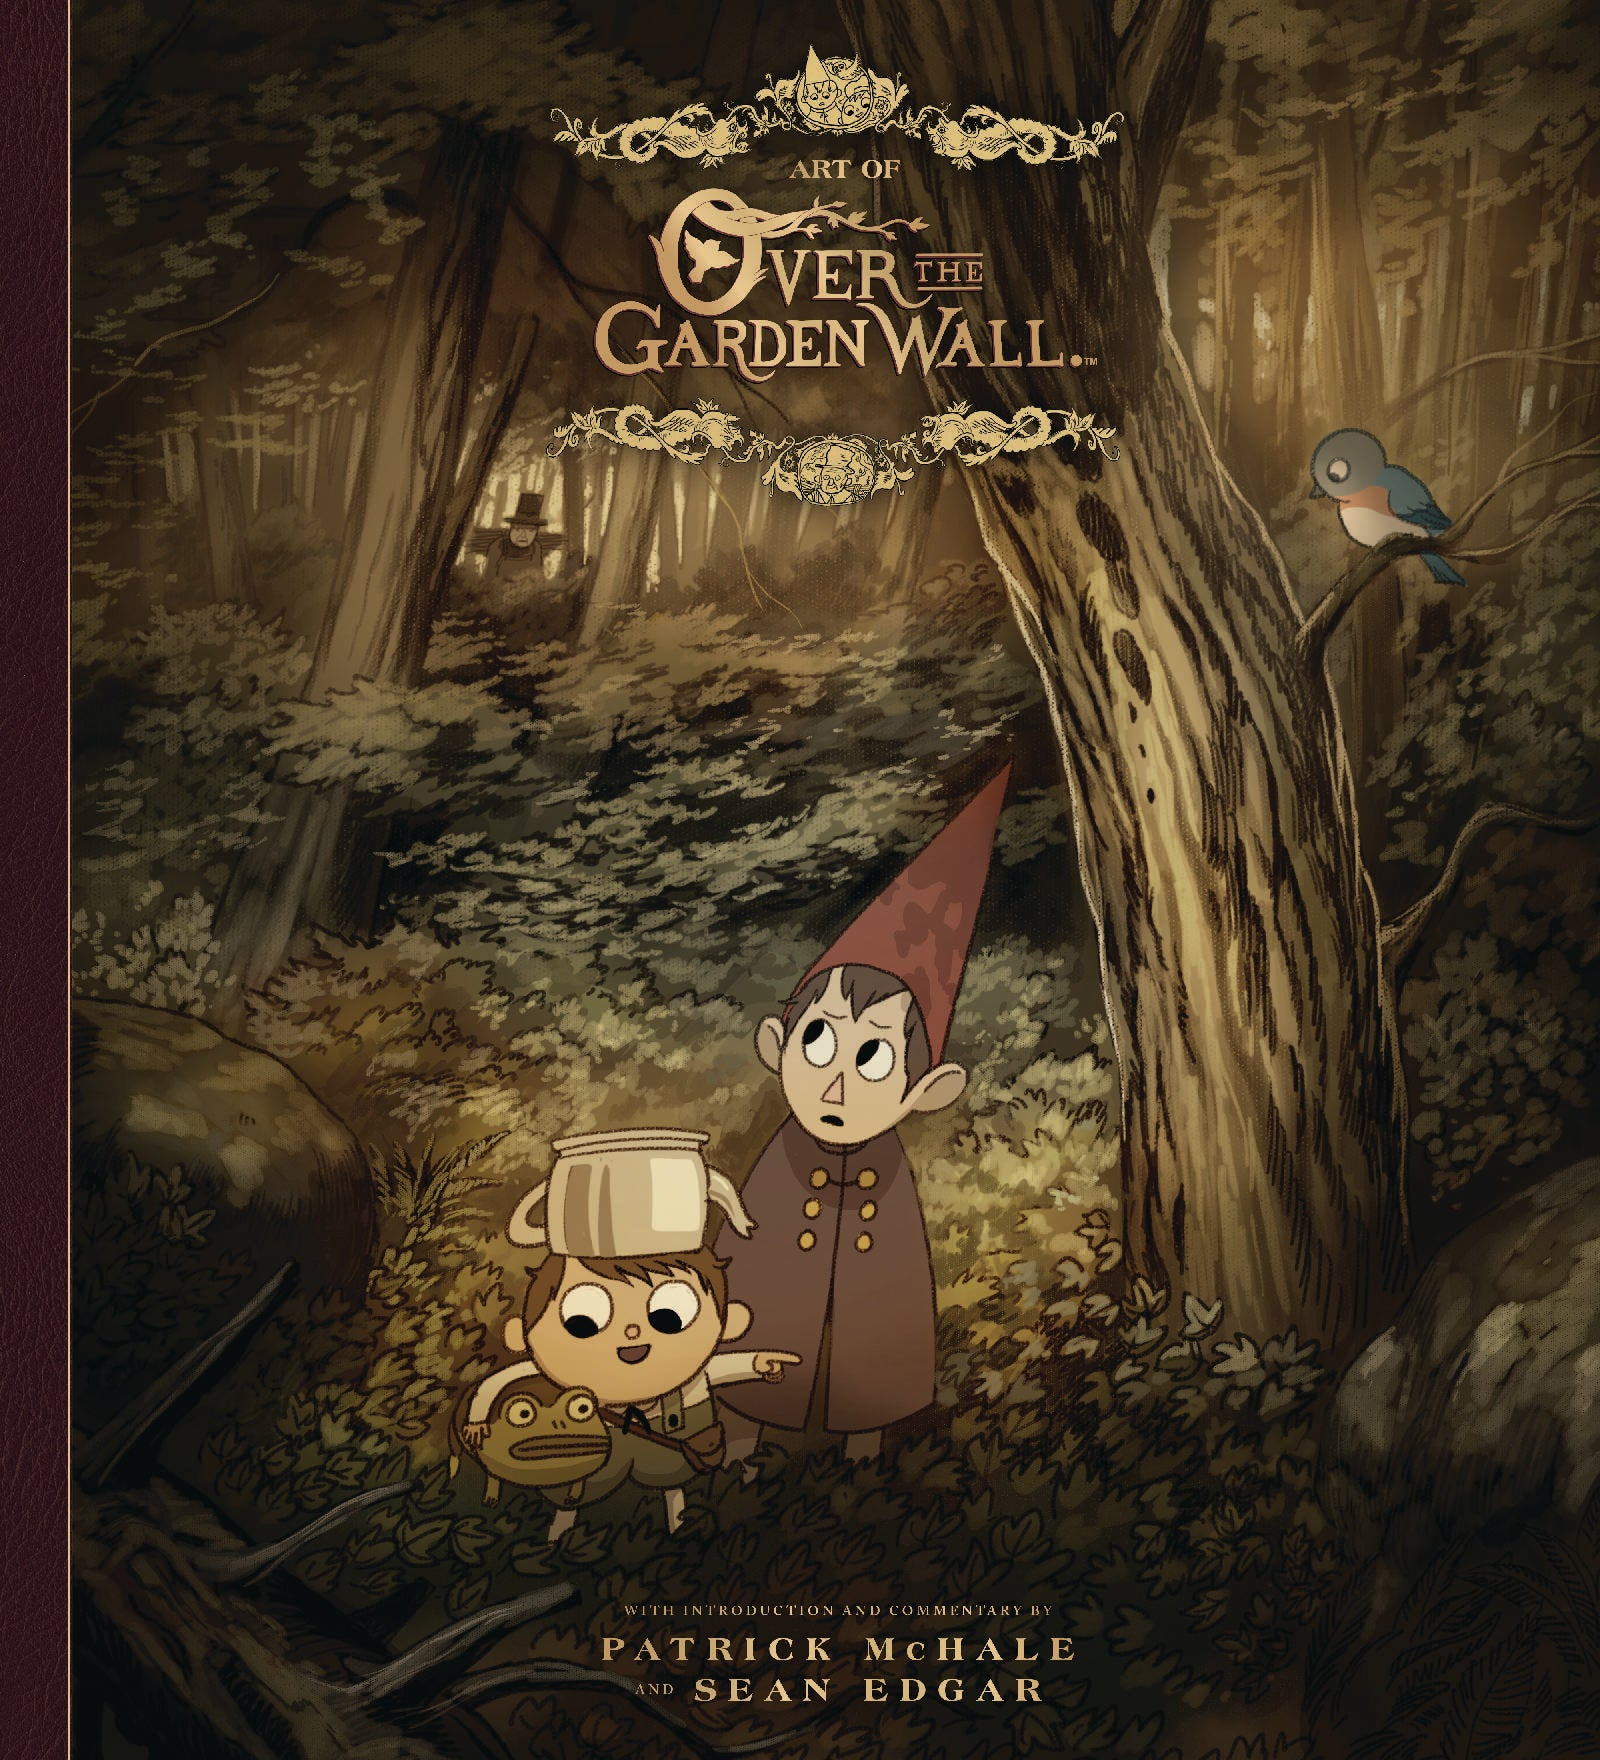 The Art Of Over The Garden Wall Hardcover Gallery